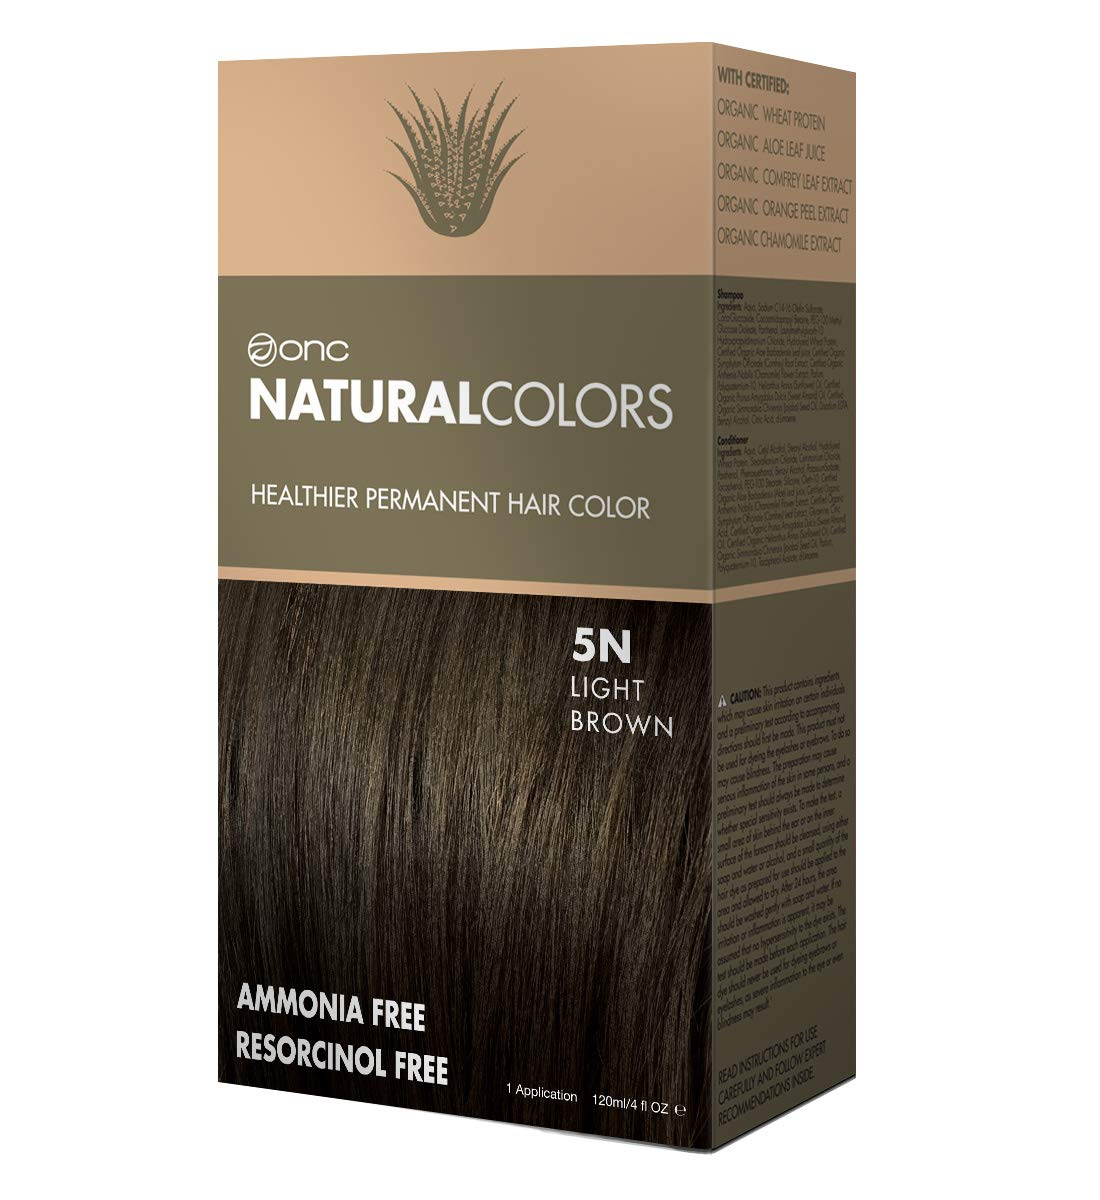 Amazon Onc Naturalcolors 5n Natural Light Brown Healthier